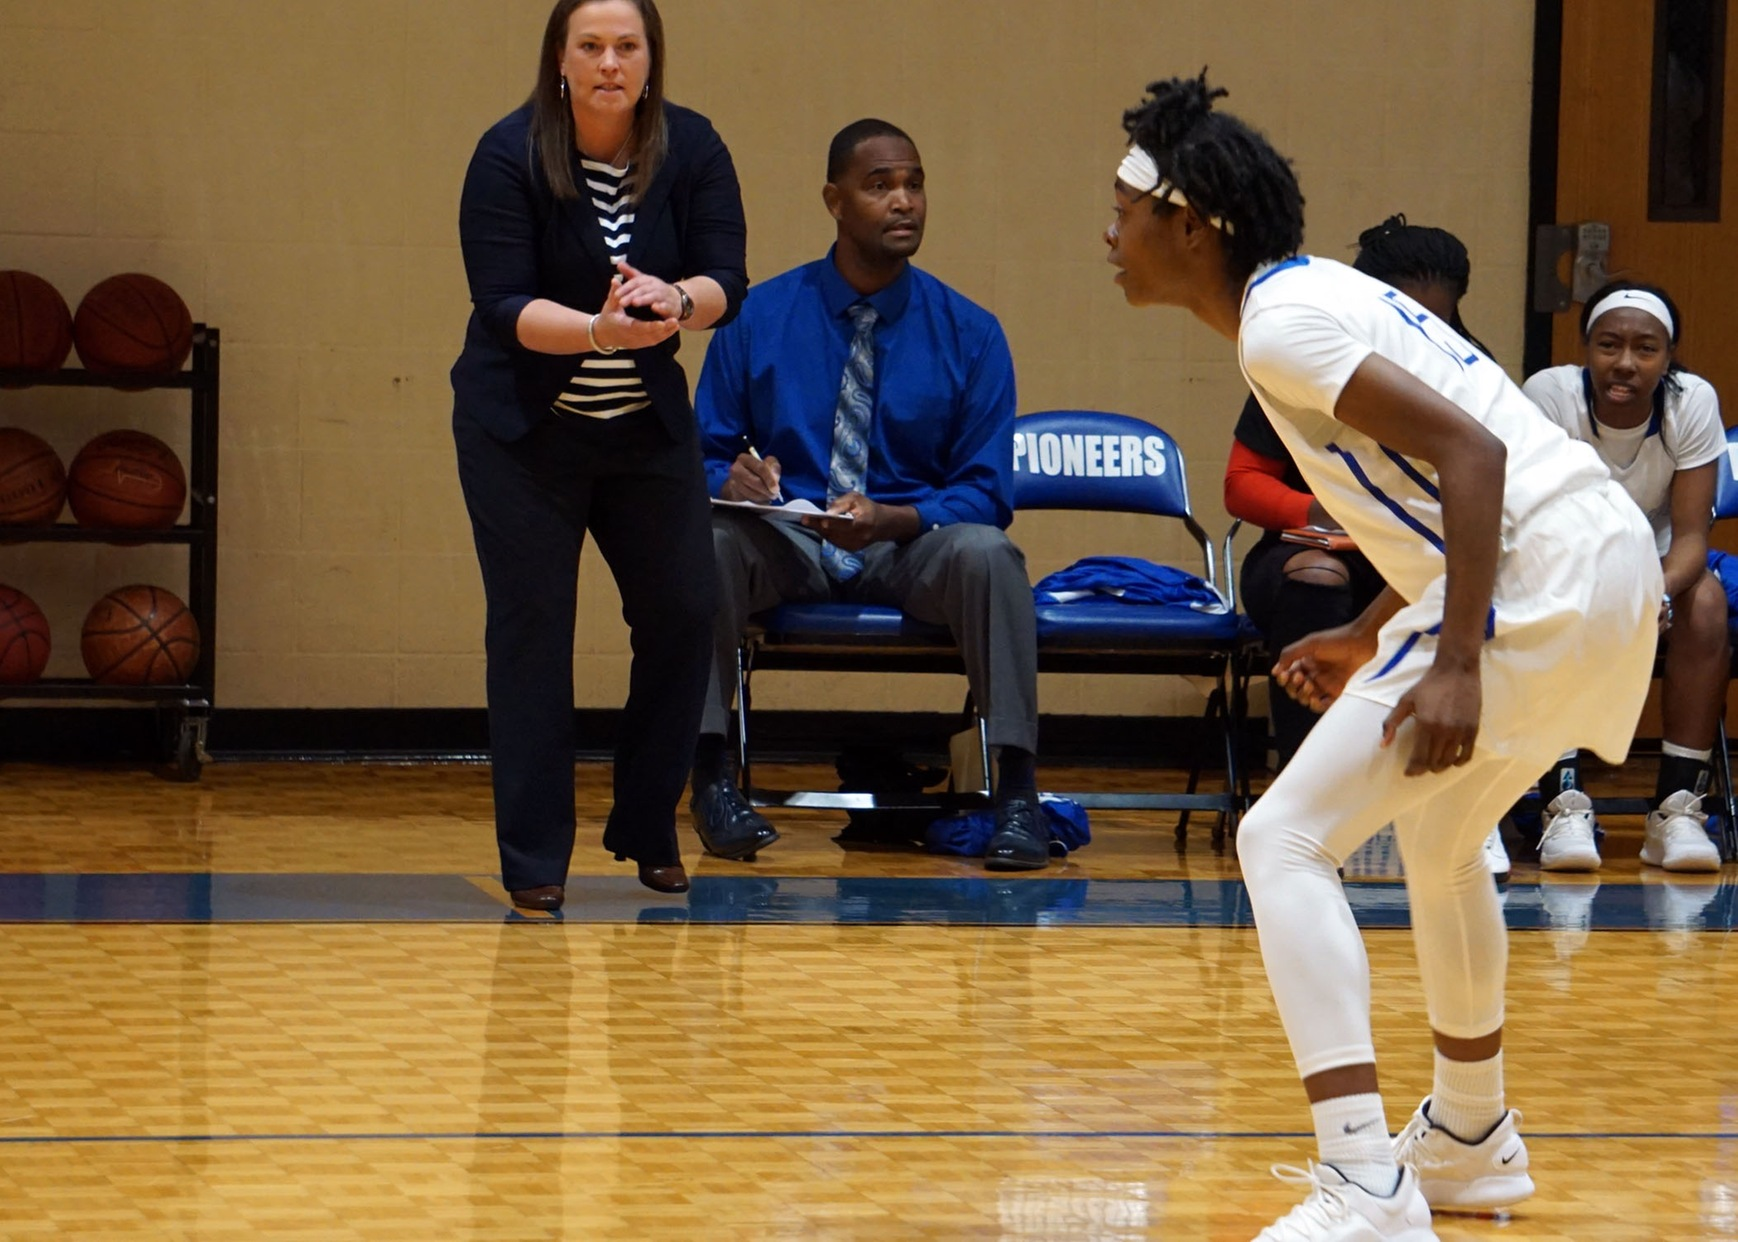 Women's Basketball Loses 58-70 to East Georgia